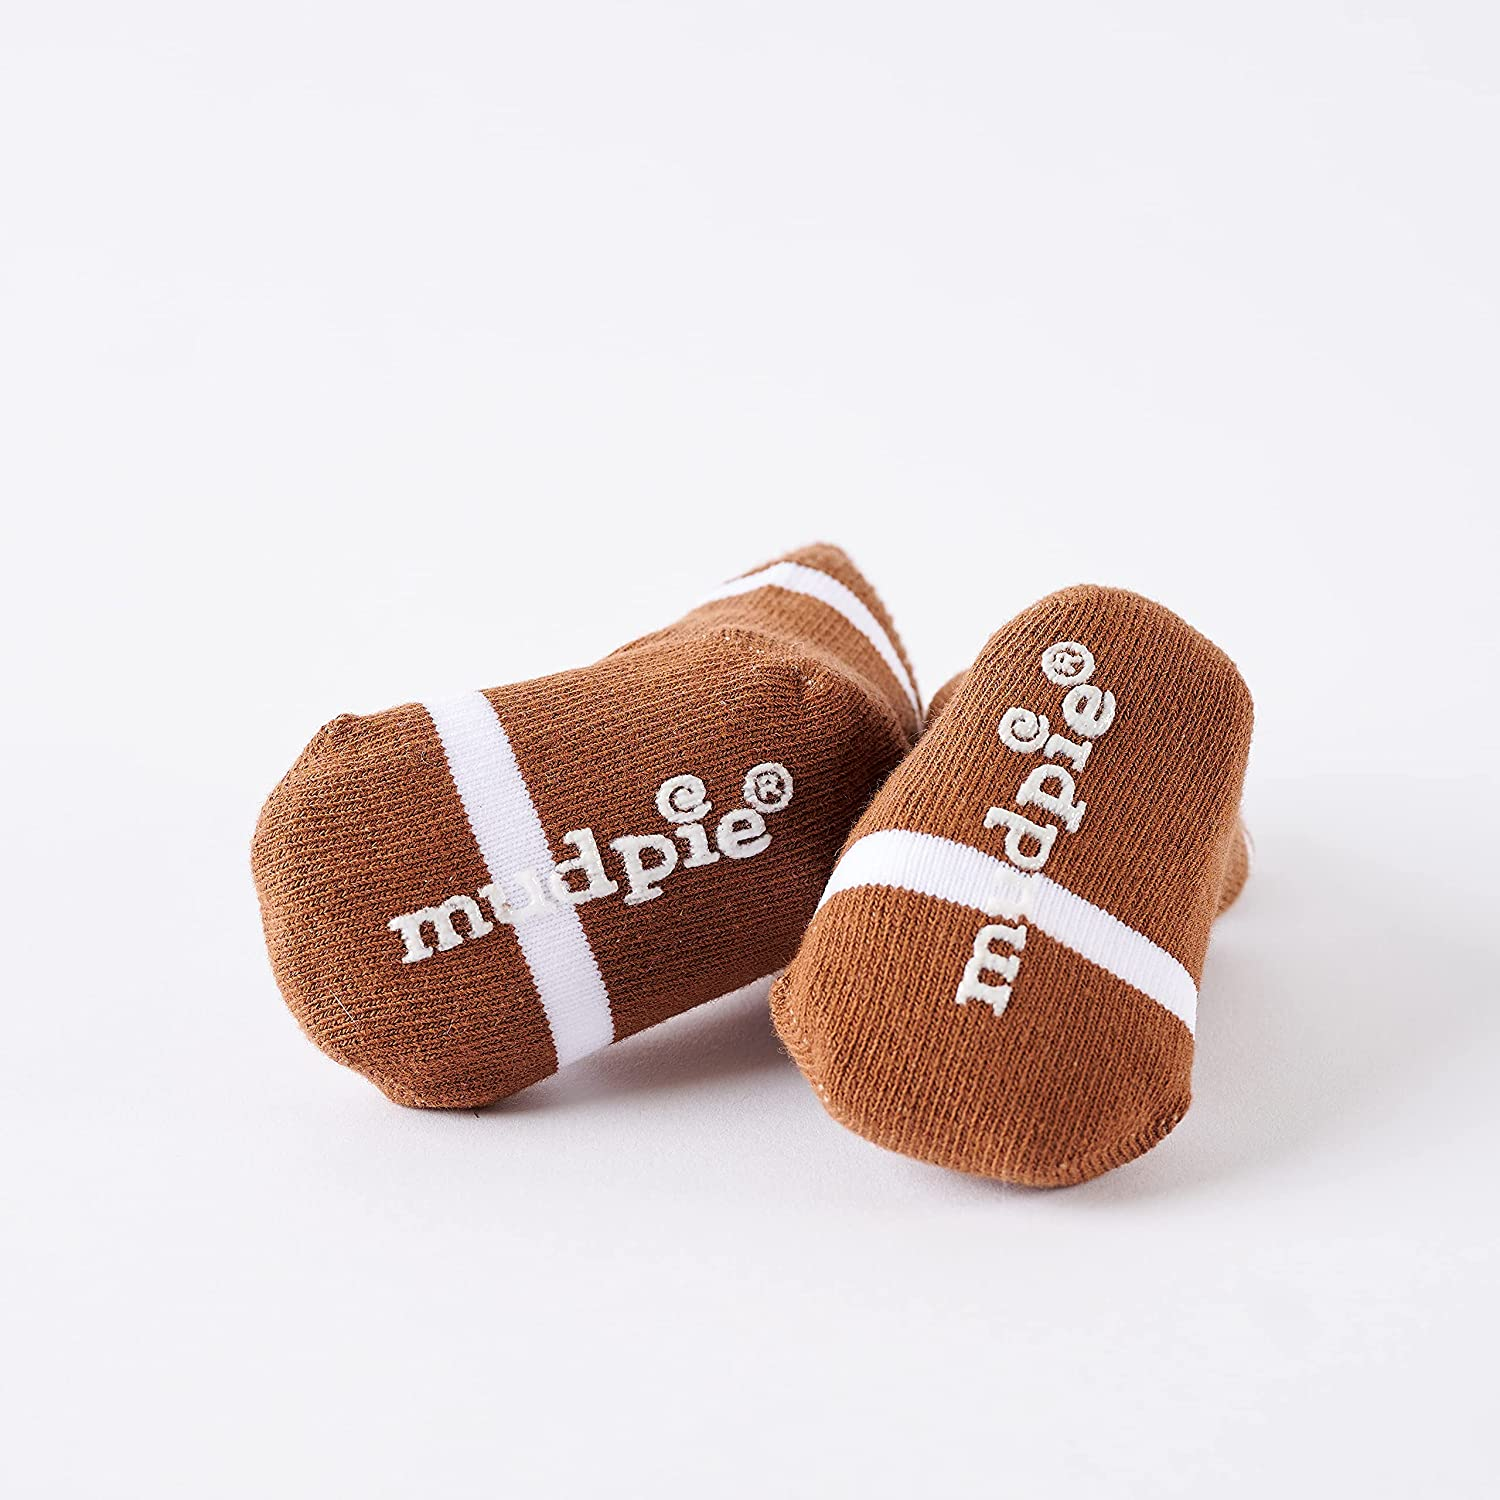 Mud Pie Newborn Baby-Boys Football Socks, Brown/White, 0-12 Months: Infant And Toddler Socks: Clothing